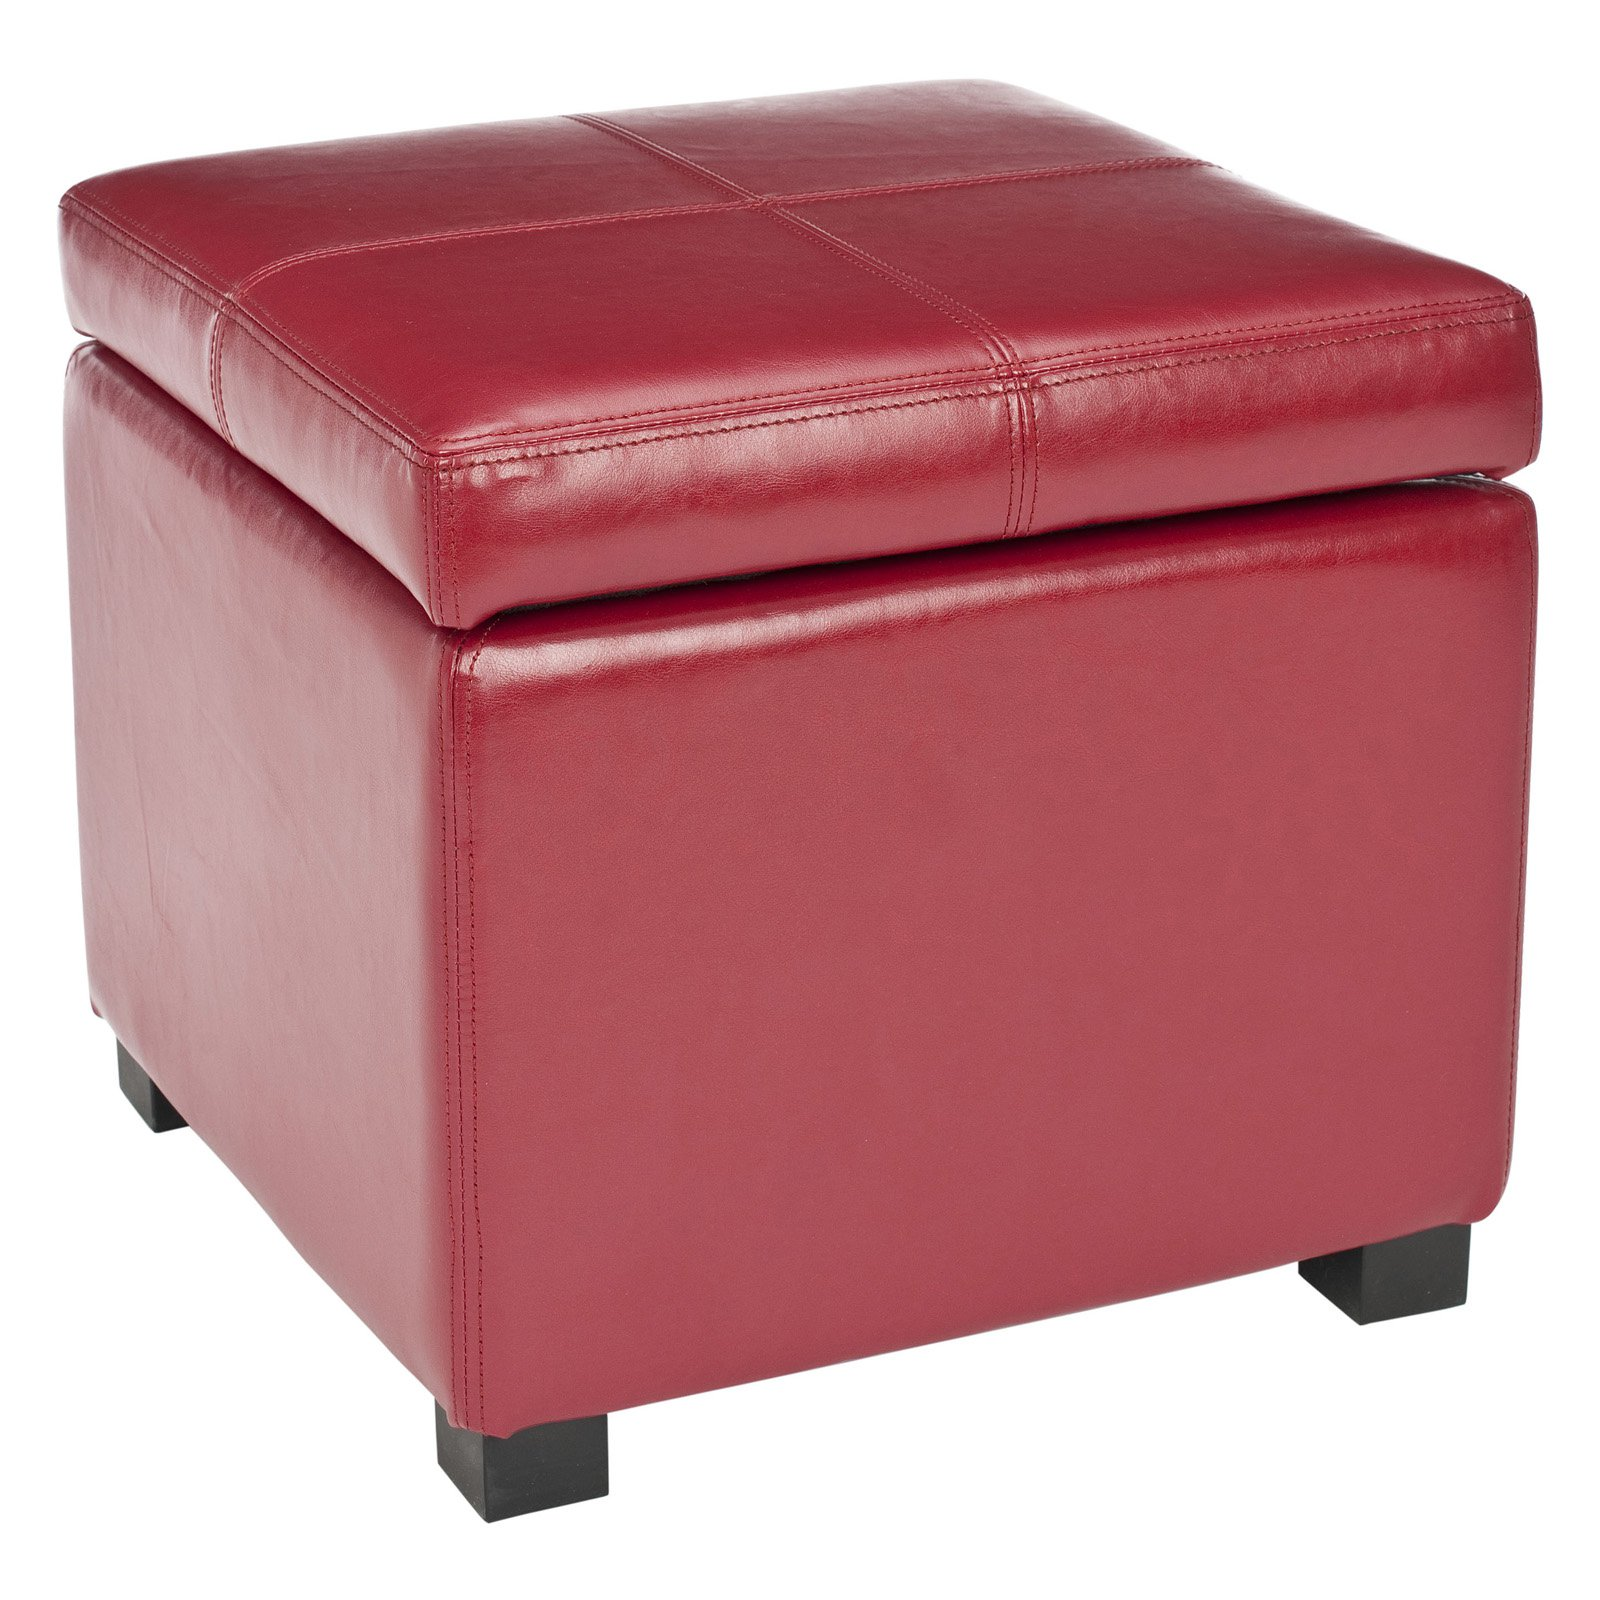 Safavieh Madison Square Leather Ottoman